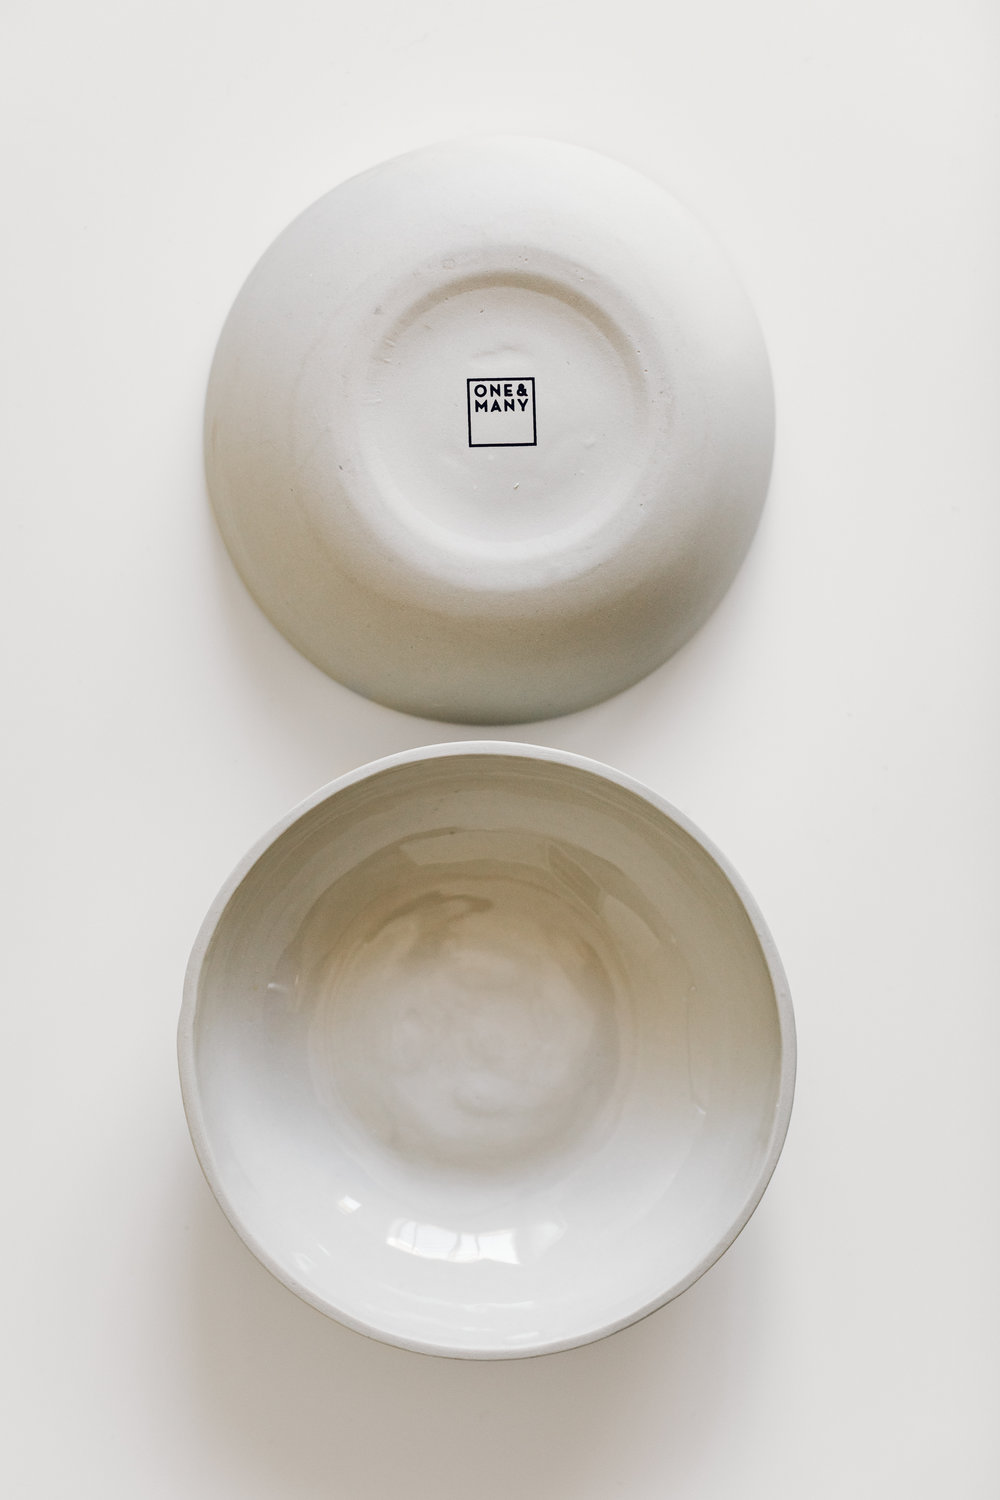 One & Many - Yaara Landau-Katz makes this beautiful line of ceramics out of her studio in Israel - definitely not local for me, but these were a special buy to have a few bowls from another part of the world!She has an industrial design background, a love for clean, modern lines, and a minimal color pallet.Pictured here are her 'ceramic plates', although I would categorize them as bowls, great for soups, desserts, and snacks.Visit her site here. (She is also on Etsy.)